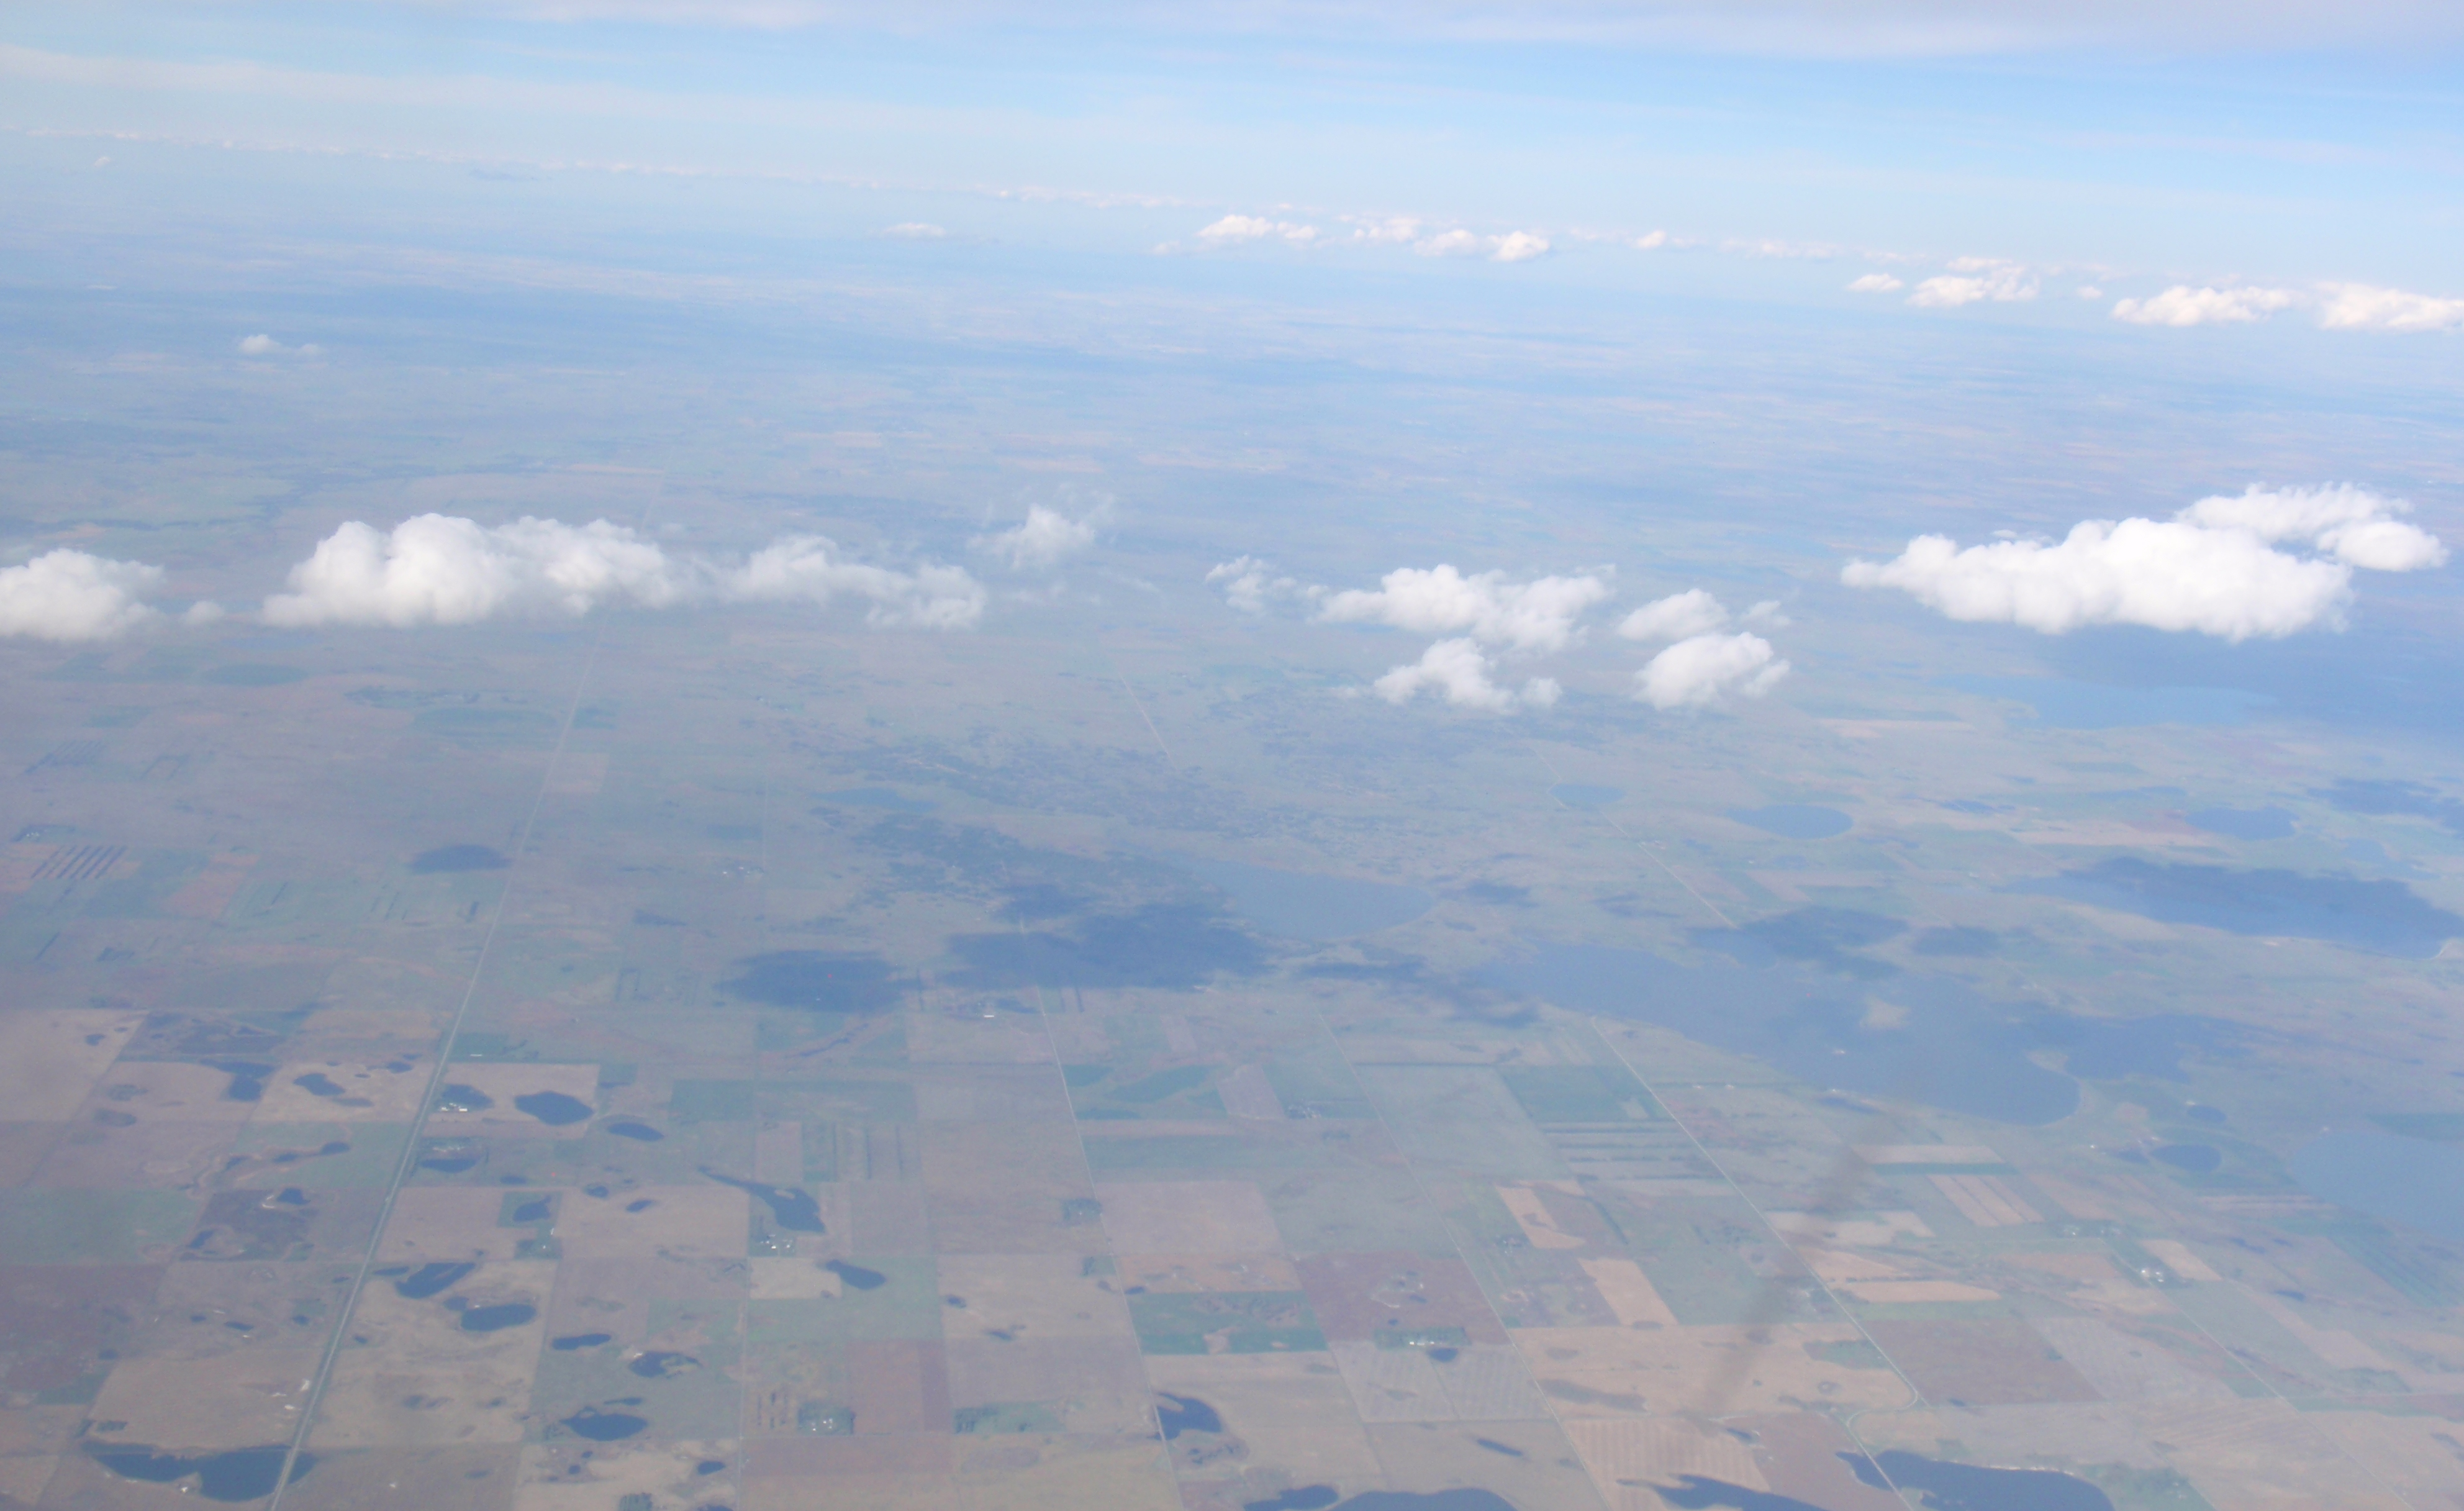 Lots of wells down there, but not a mountain in sight on flight back to Minneapolis. Photo by James Ulvog.